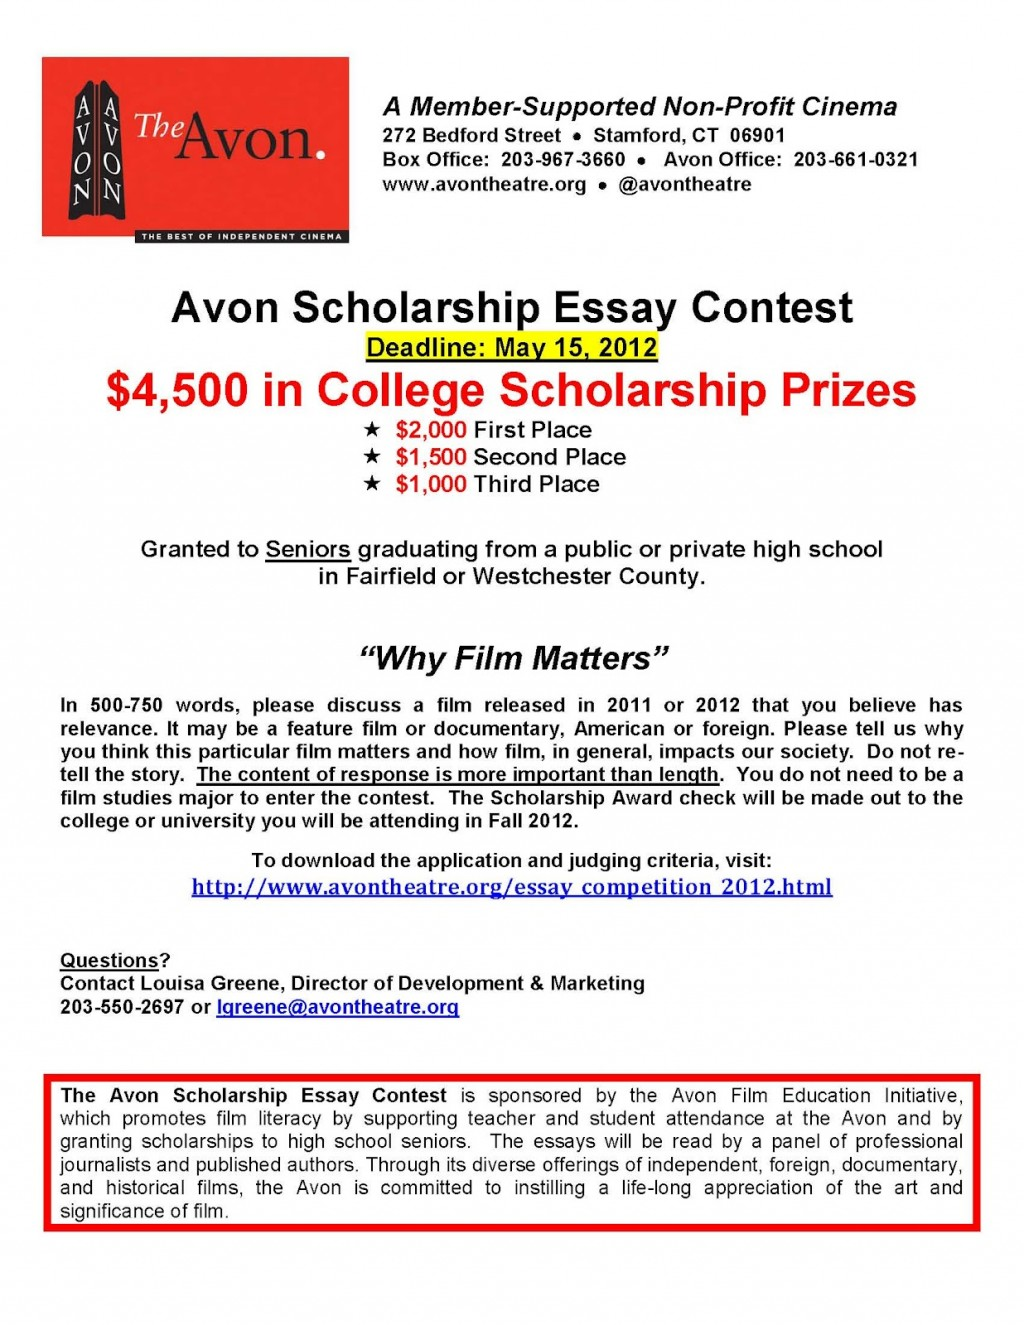 016 Avonscholarshipessaycontest2012flyer Essay Example Shocking Scholarships For High School Students Study Abroad Examples 2018 Bachelors And Masters Large